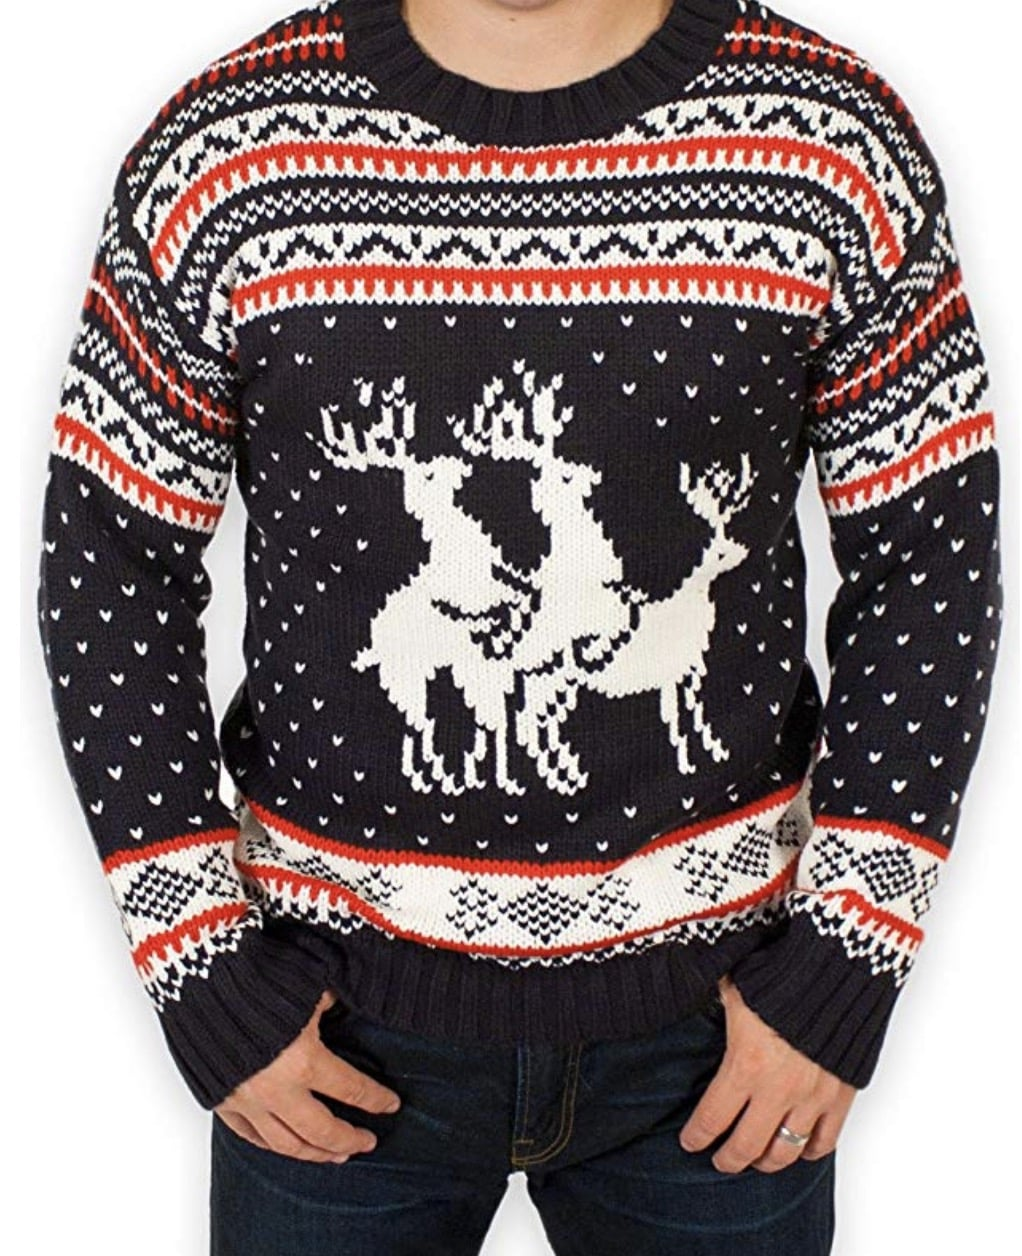 Reindeers Humping Inappropriate Christmas Sweater